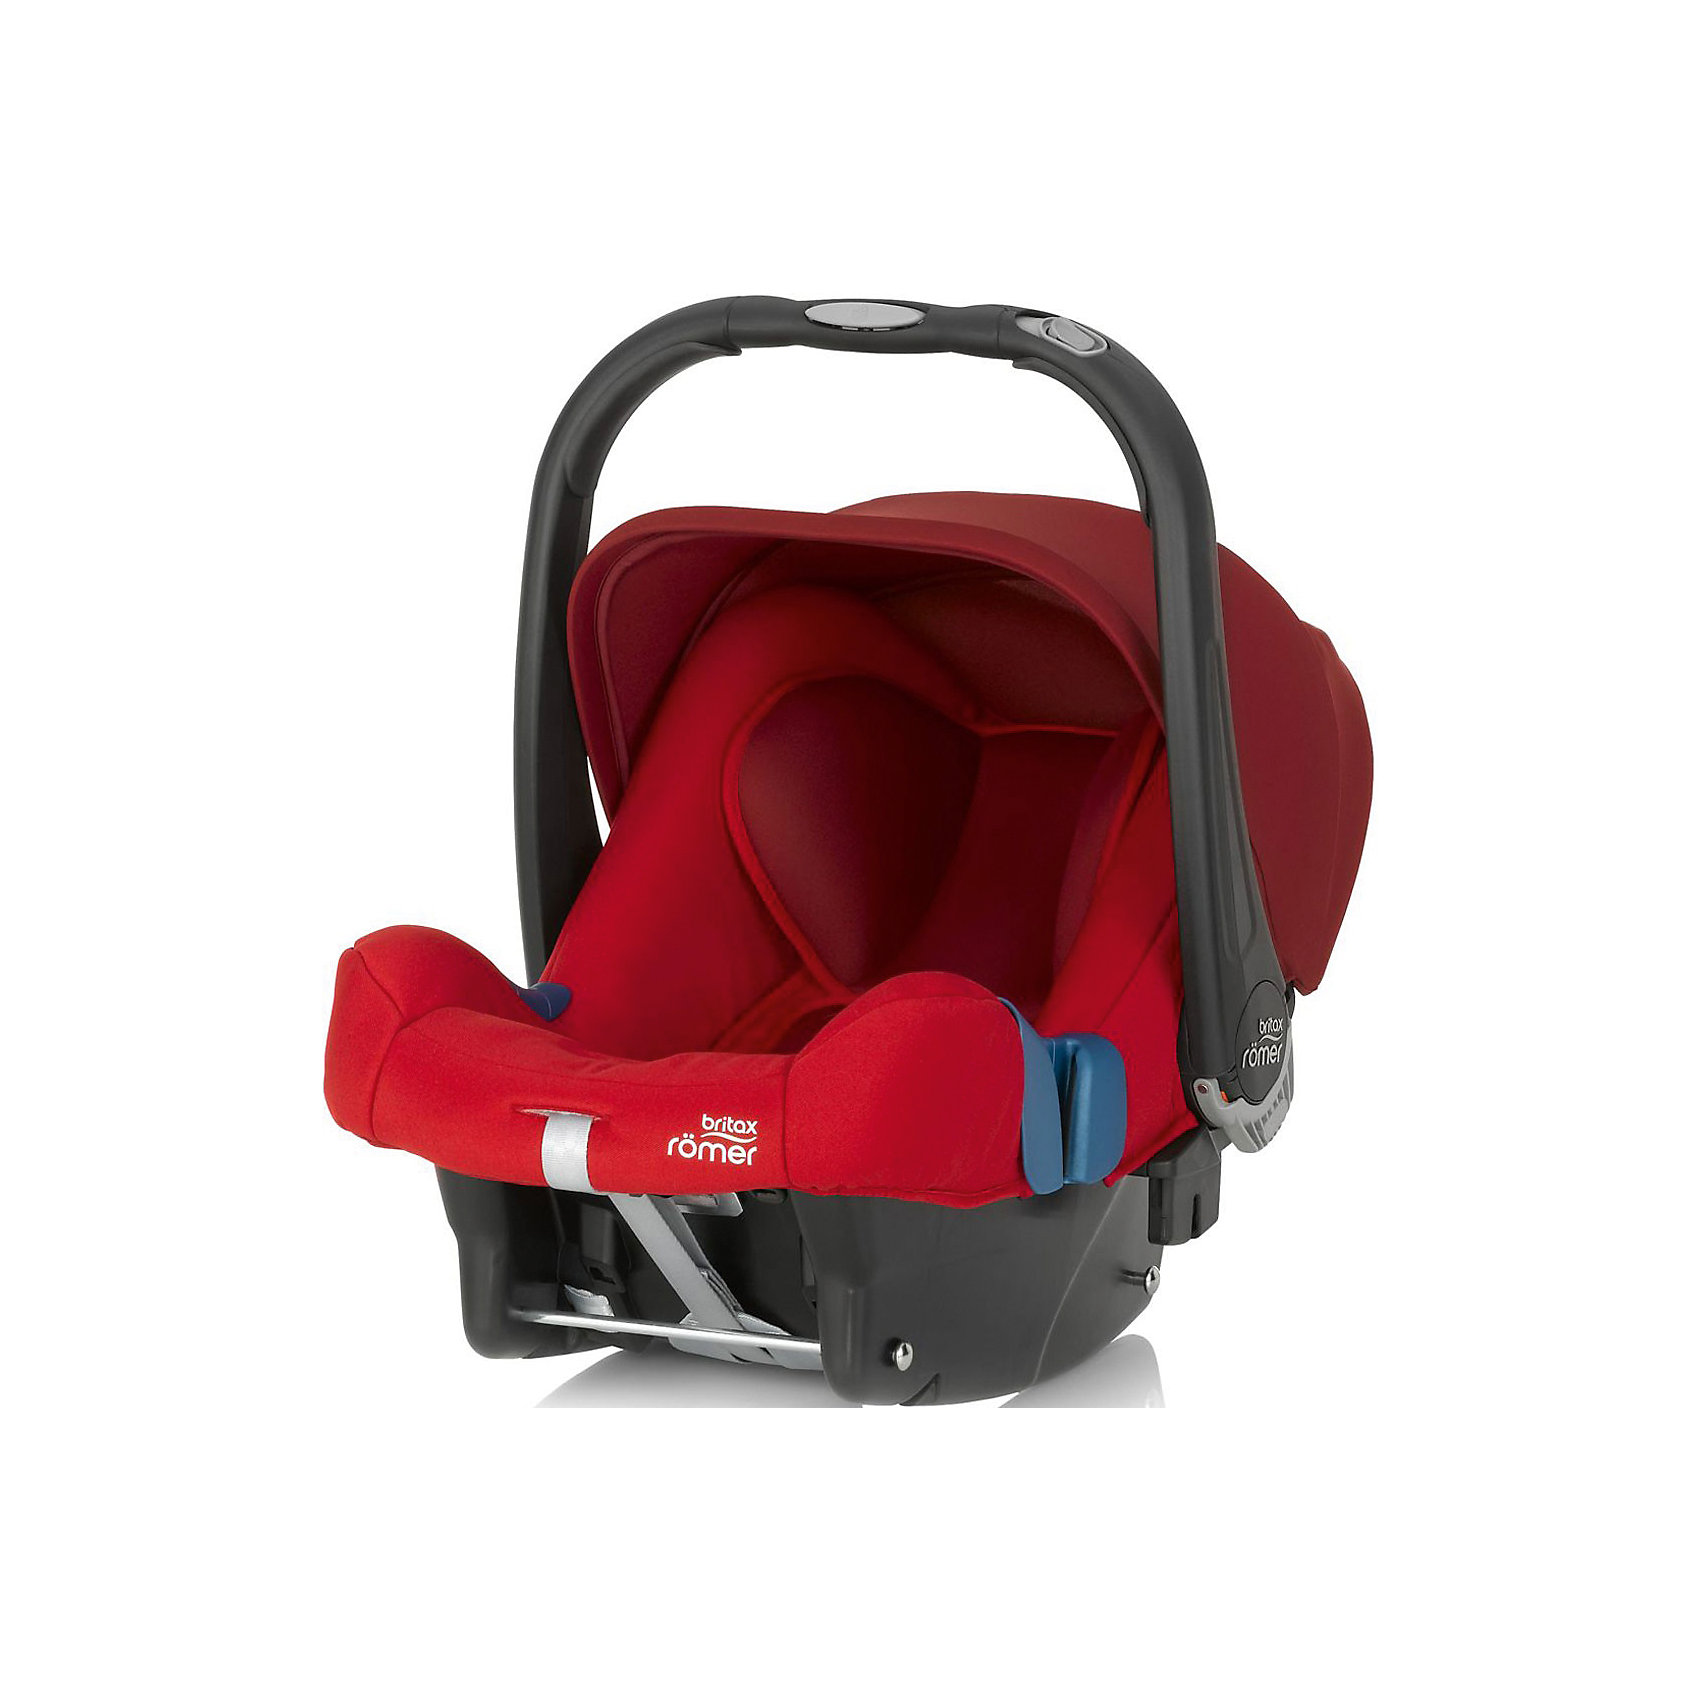 Britax Römer Автокресло Baby-Safe Plus SHR II, 0-13 кг., Britax Roemer, Flame Red автокресло britax roemer детское автокресло britax roemer kid ii группа 2 3 от 15 до 36 кг flame red